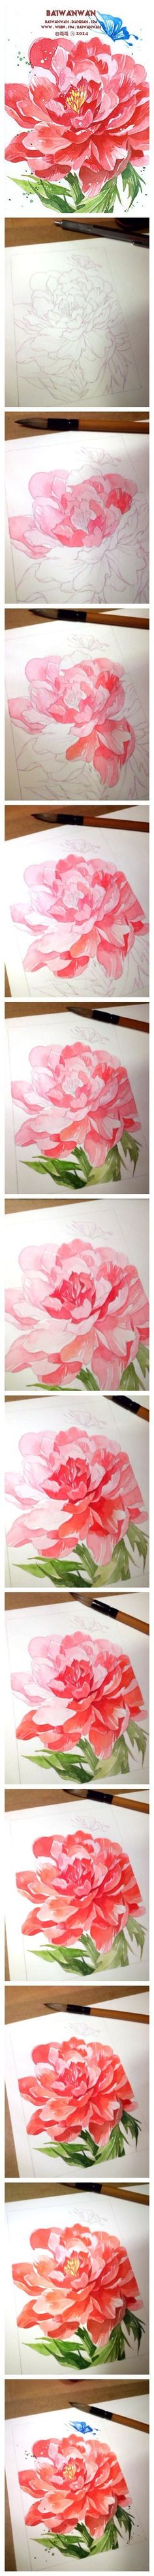 how to draw a beautiful flower